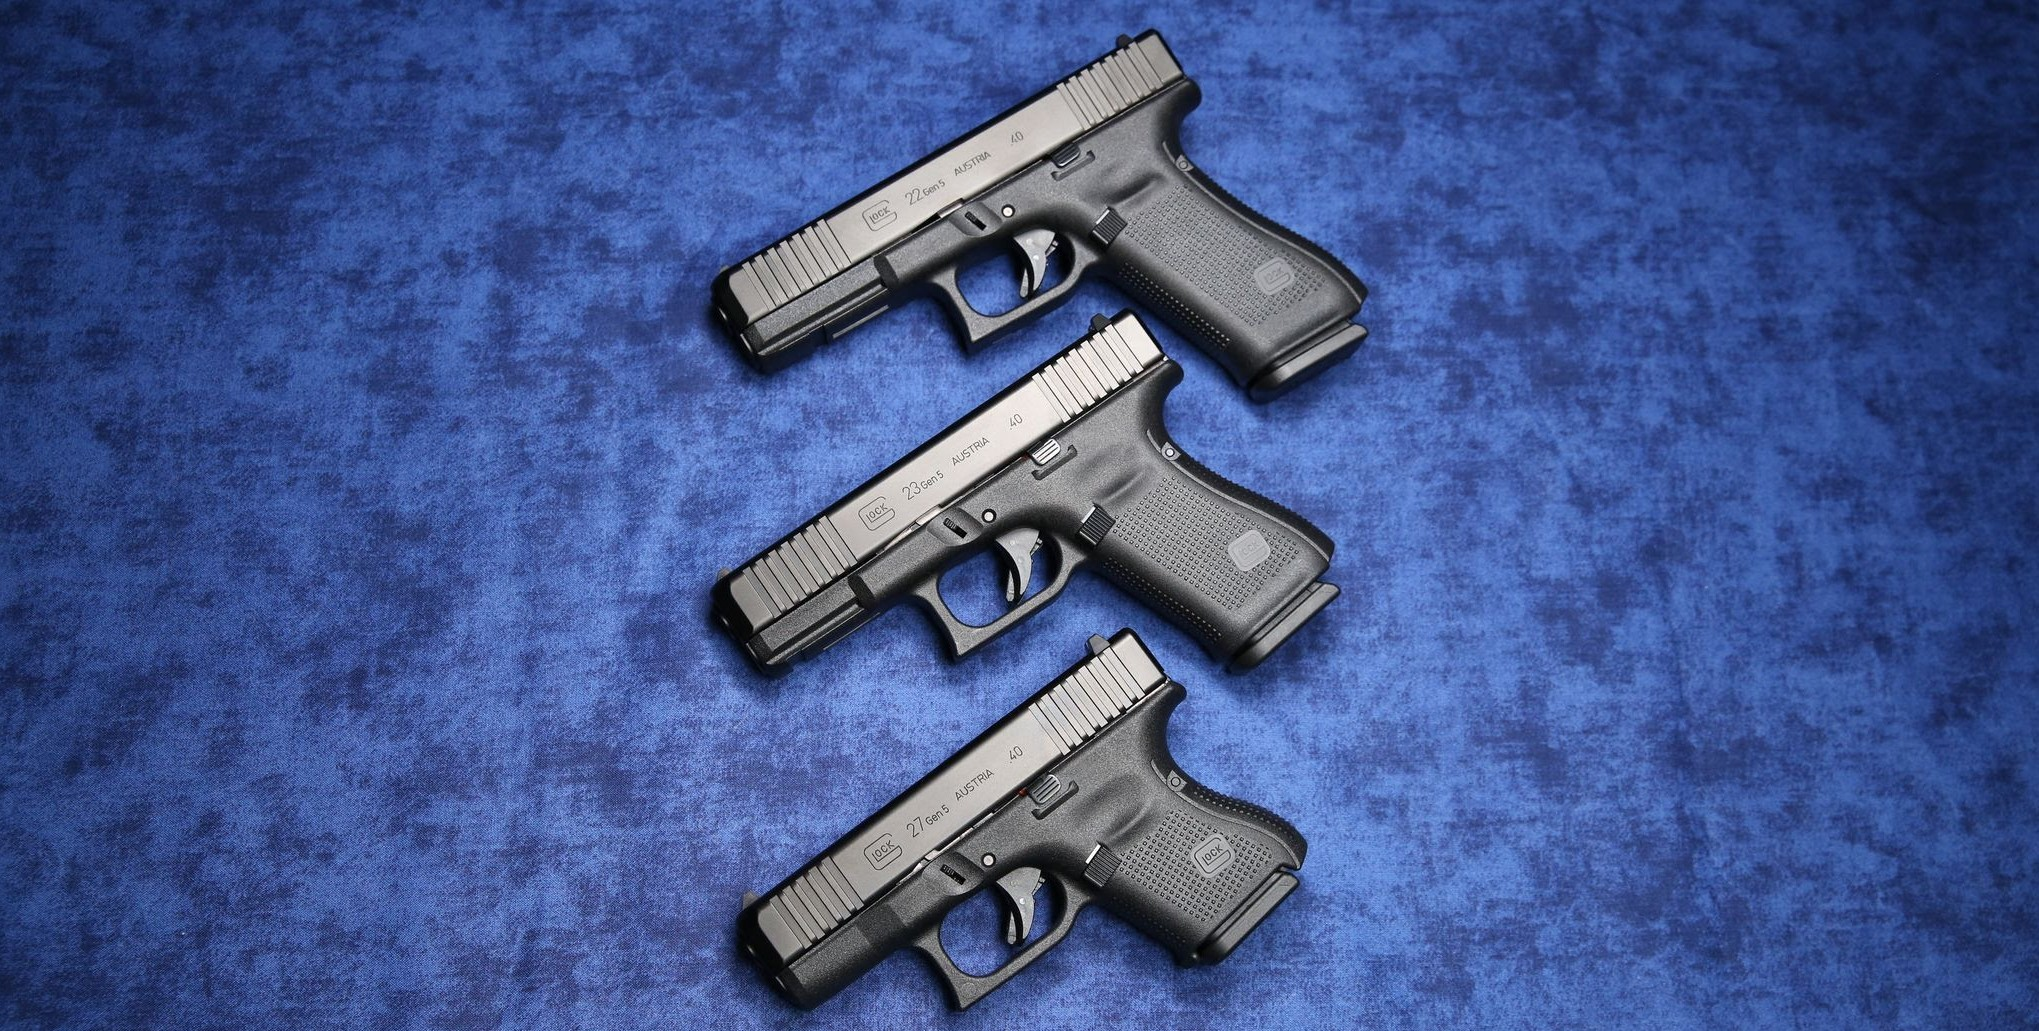 GLOCK Expands their Gen5 Technologies to the .40 Caliber Line